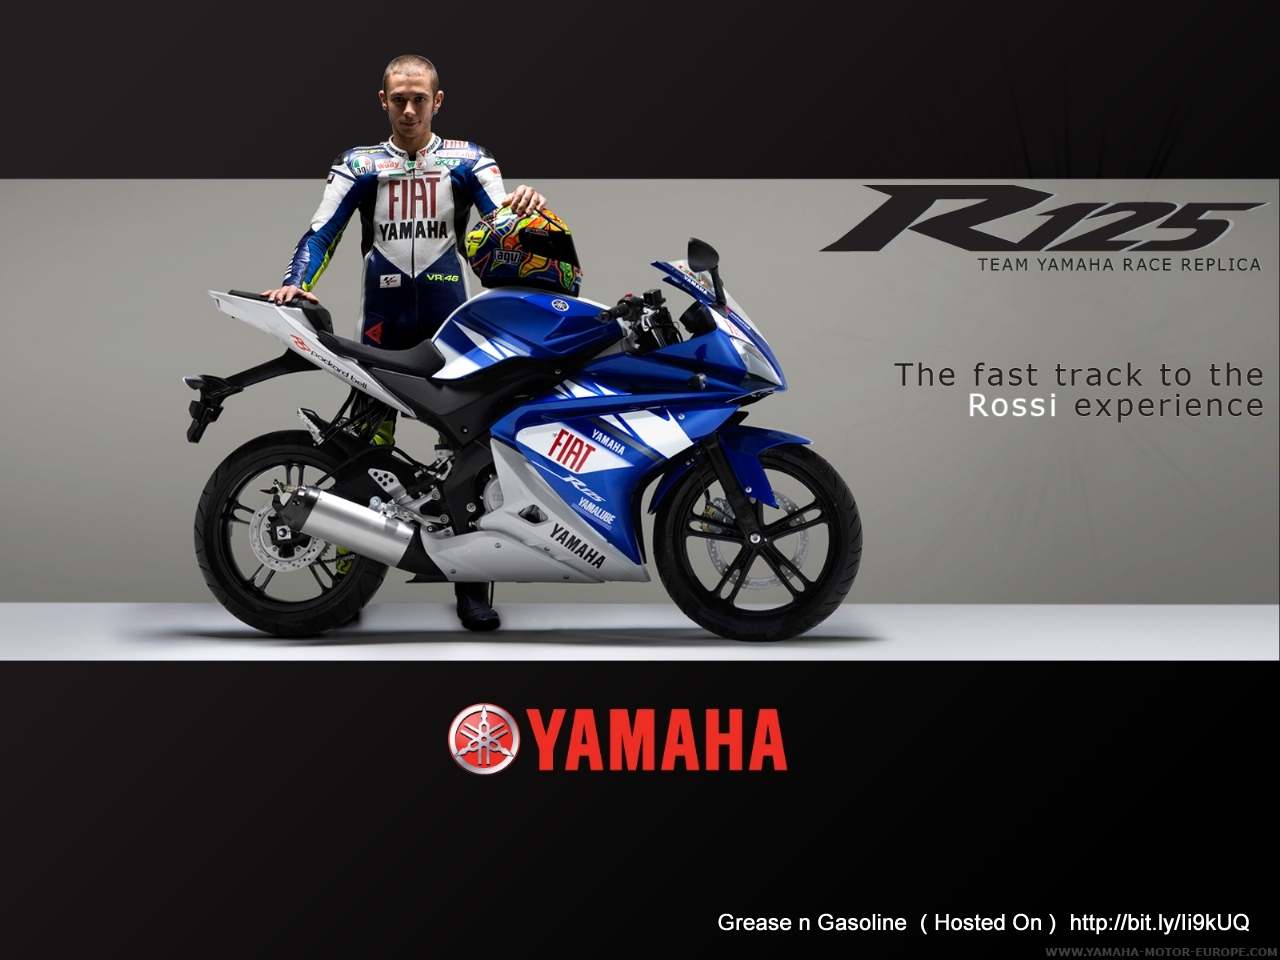 Yzf R125 Price in India Yamaha Yzf R125 India